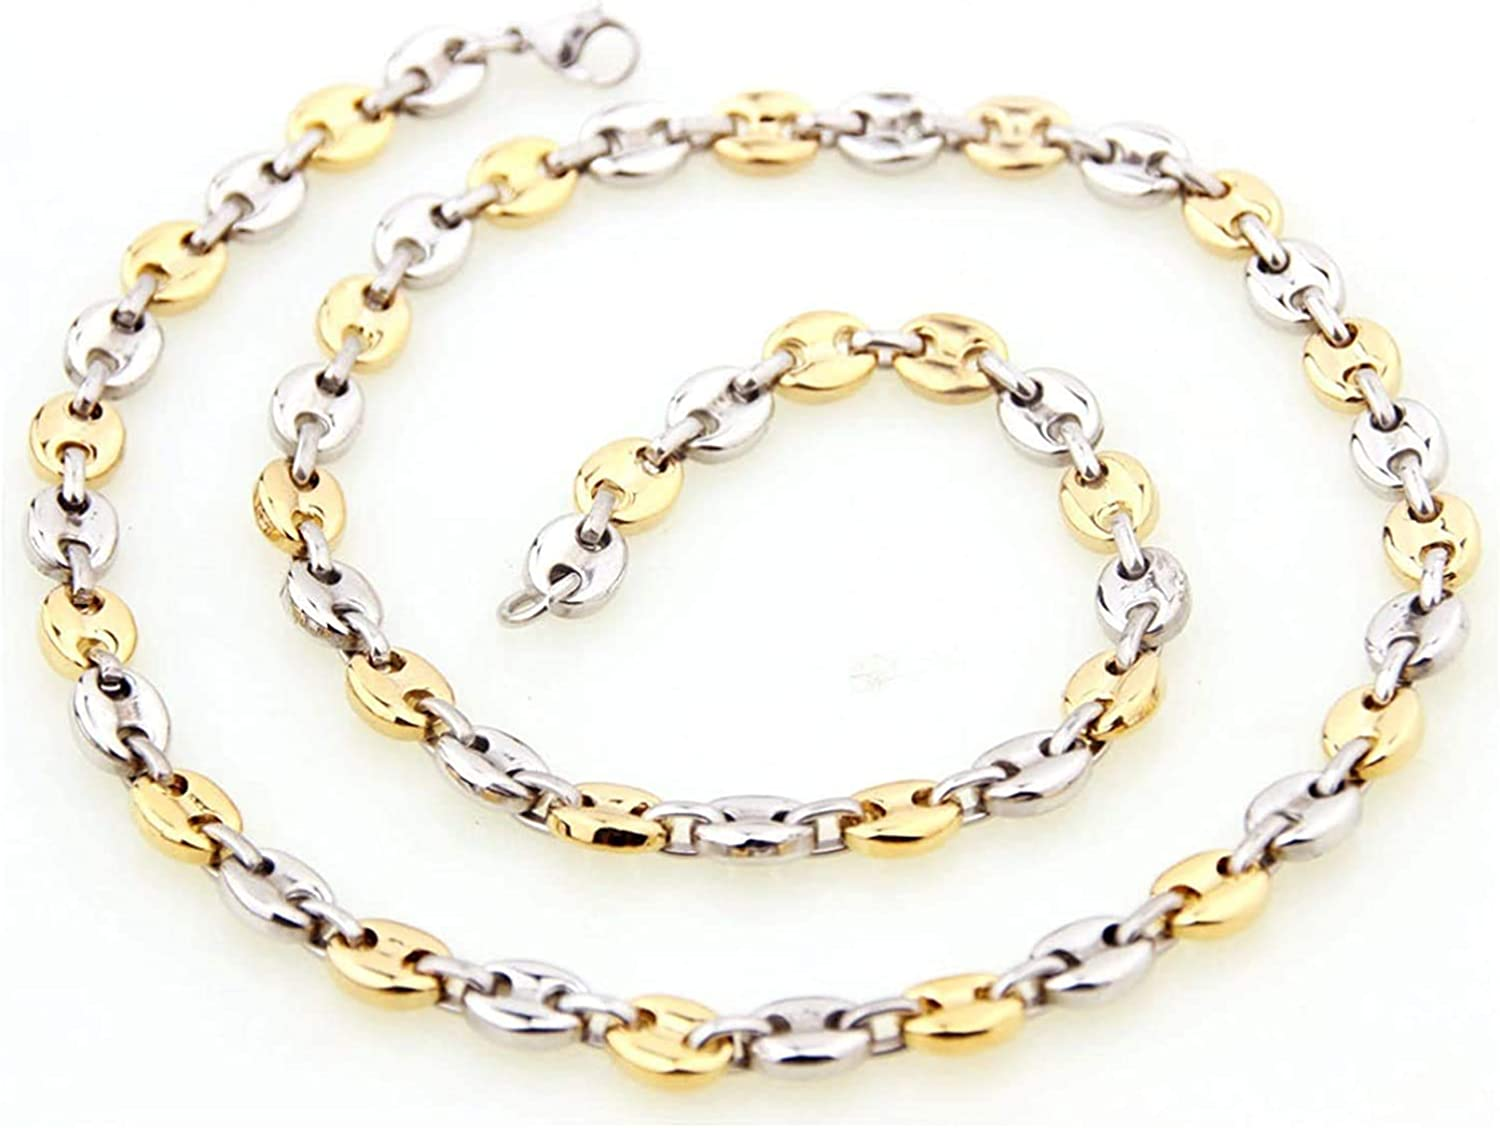 LOPEZ KENT Stainless Steel Necklace for Men Oval Chain Silver Gold